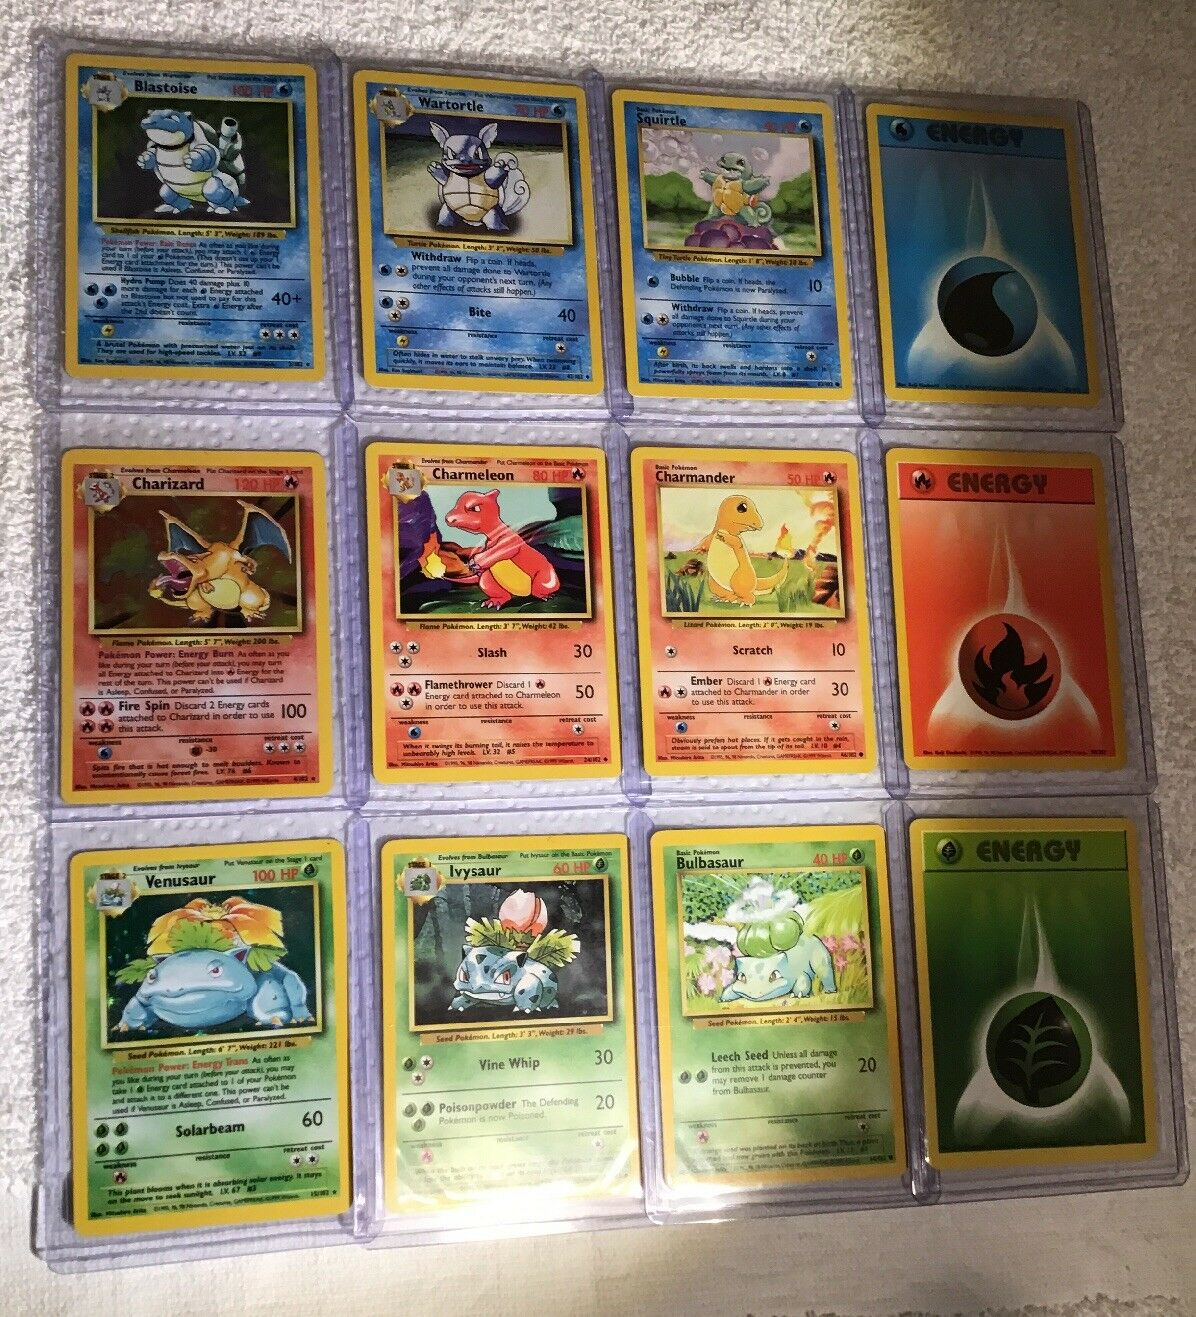 Charizard Blastoise Venusaur Venusaur Venusaur Original Evolution Set Pokemon 12 Card Set SALE 6cc3d9